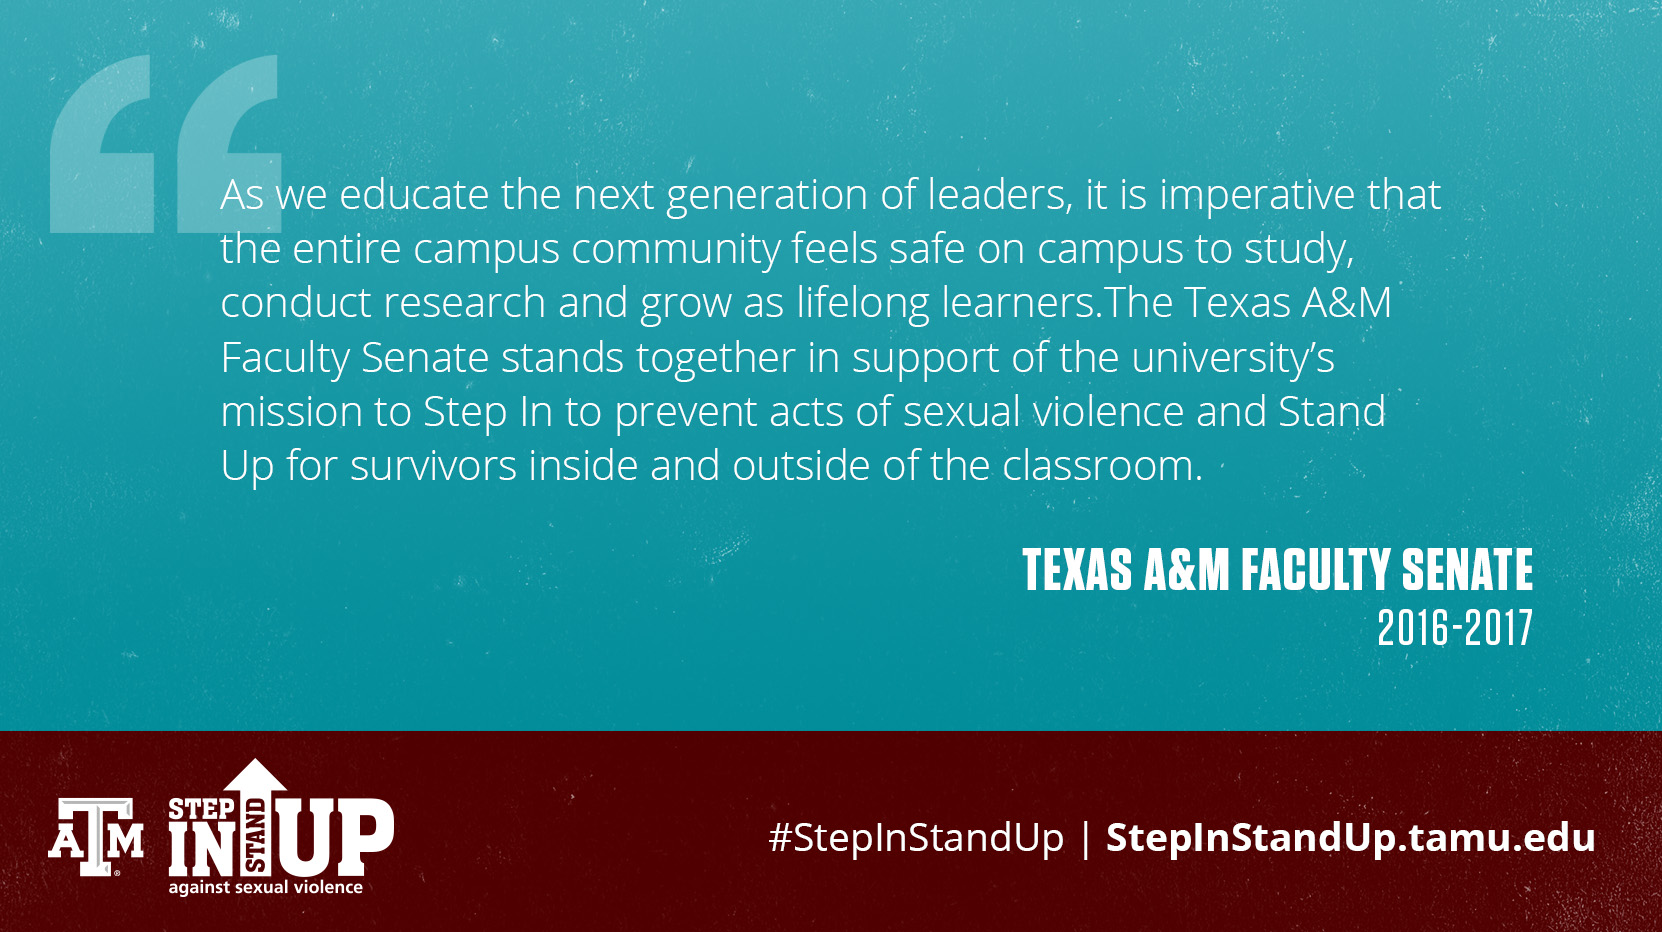 As we educate the next generation of leaders, it is imperative that the entire campus community feels safe on campus to study, conduct research and grow as lifelong learners.The Texas A&M Faculty Senate stands together in support of the university's mission to Step In to prevent acts of sexual violence and Stand Up for survivors inside and outside of the classroom. - Texas A&M Faculty Senate 2016-2017